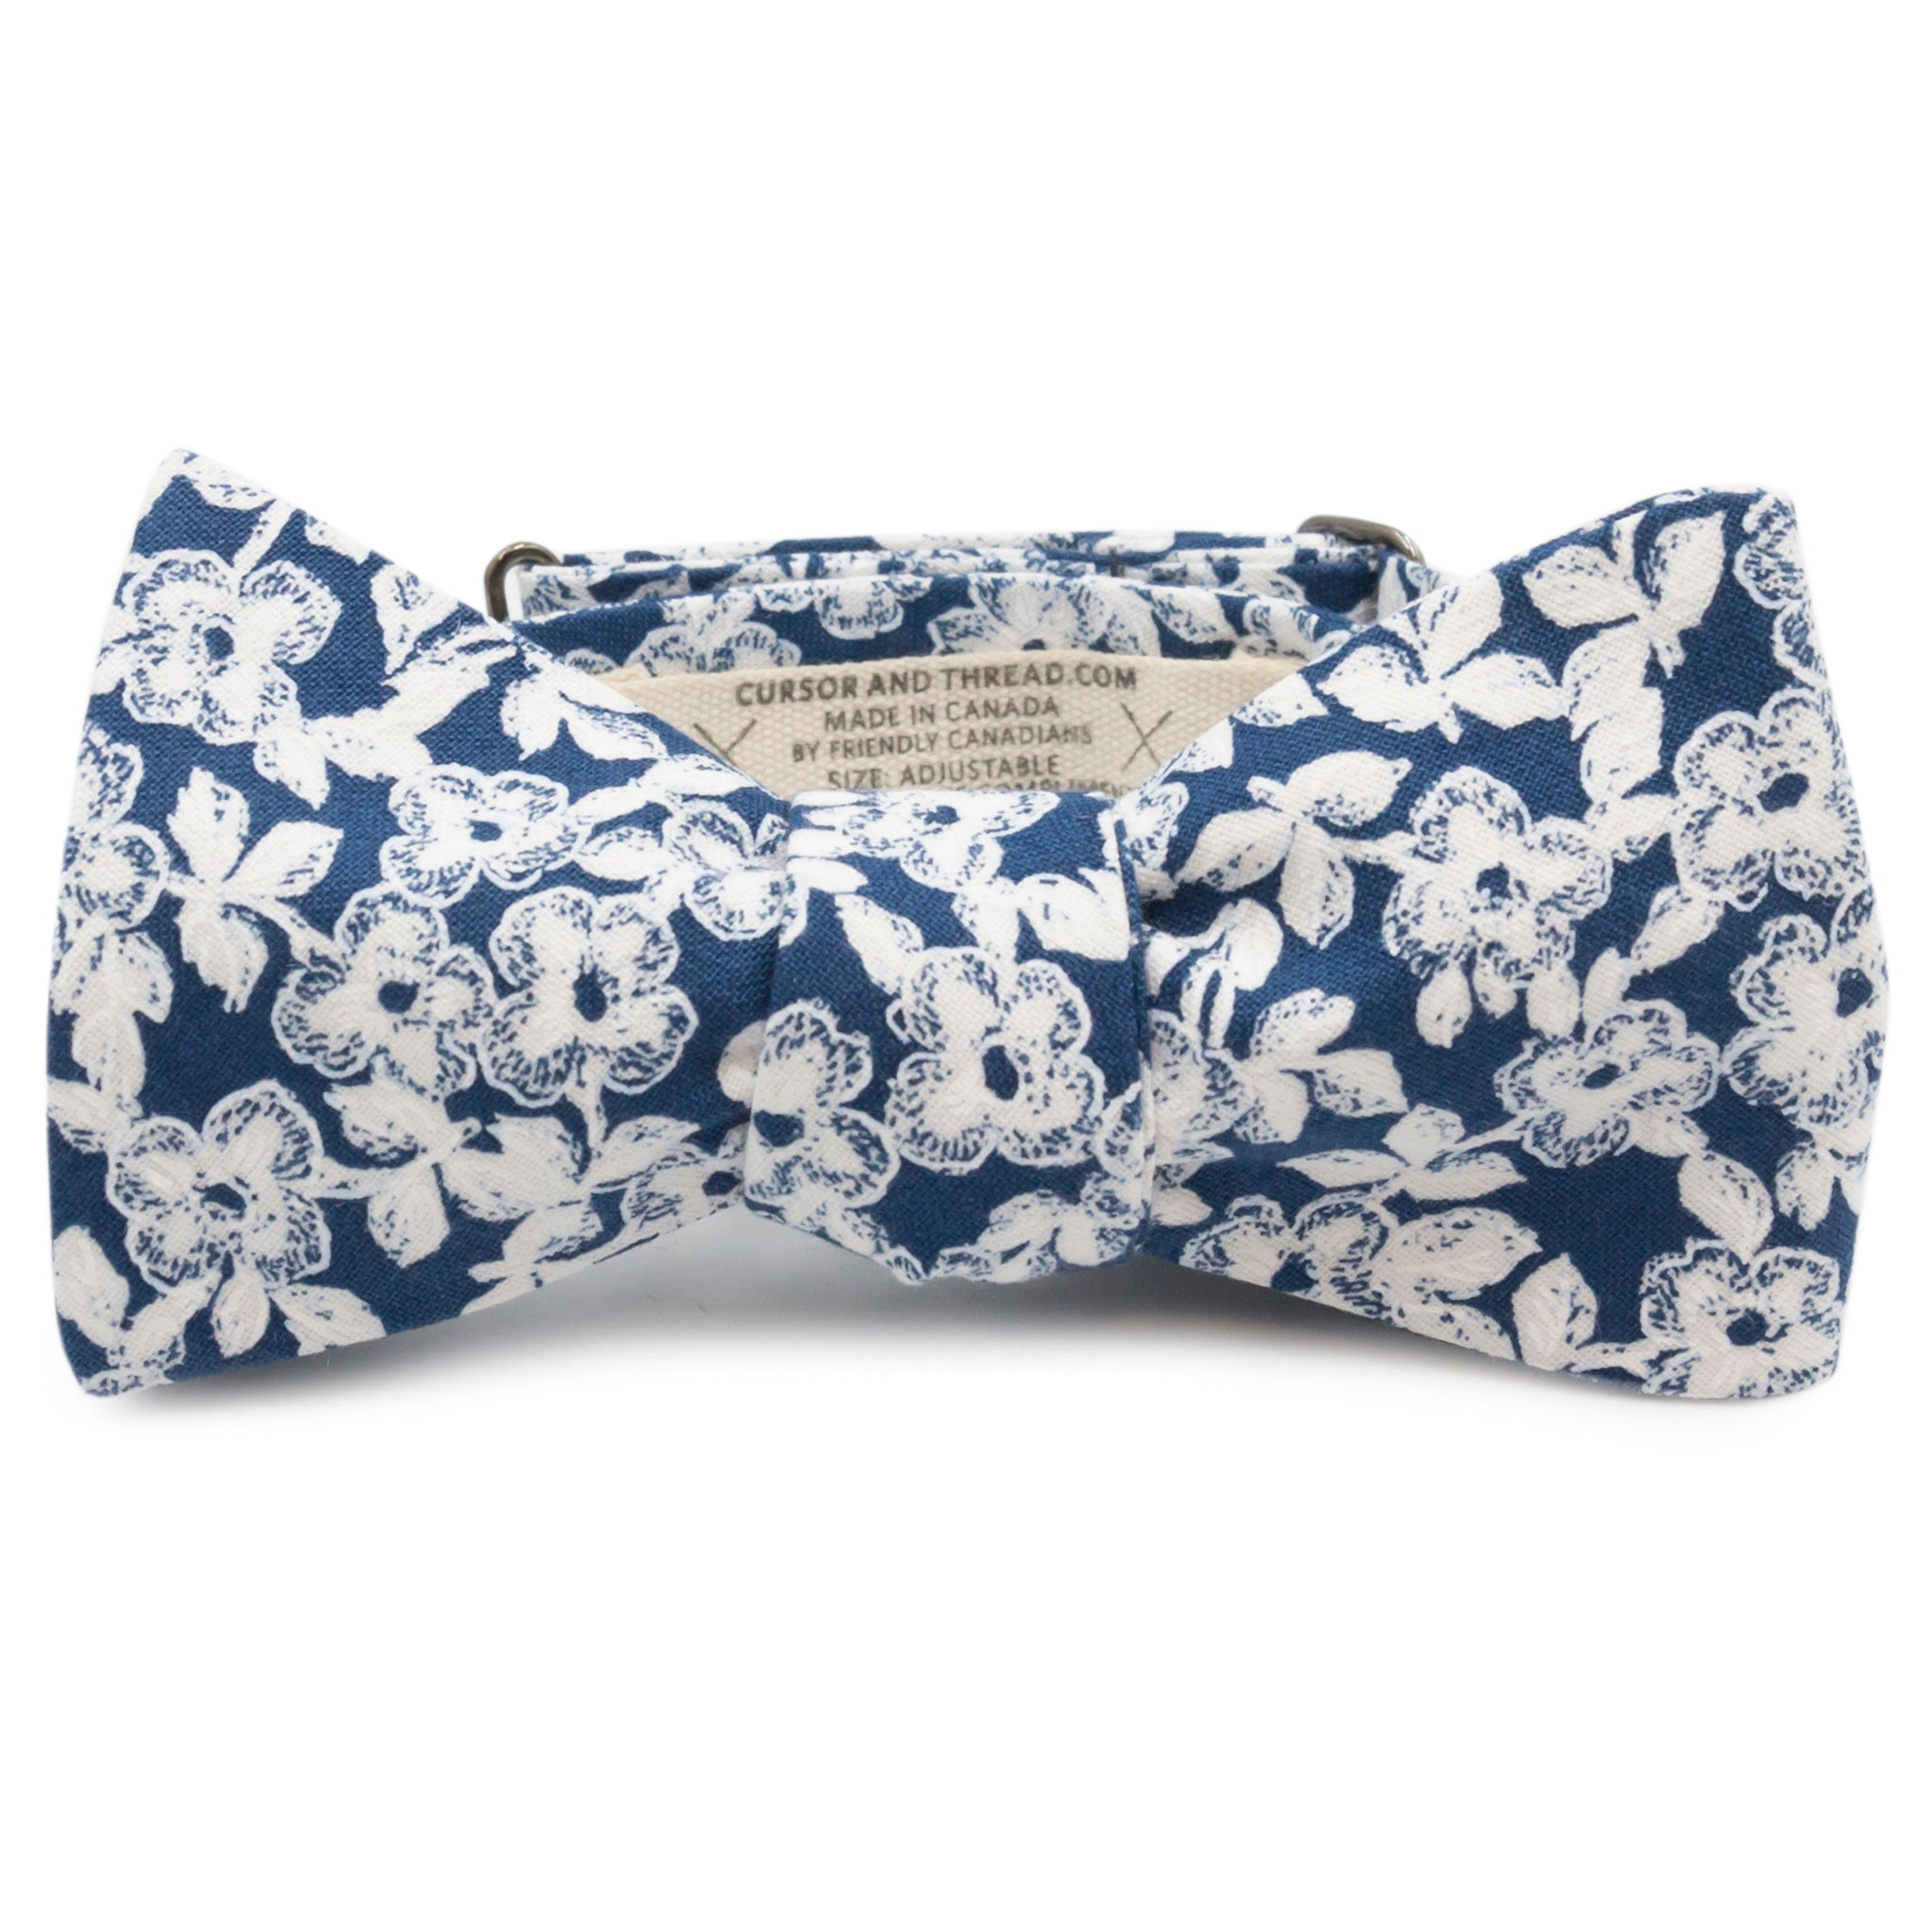 Dogwood Floral White and Blue Cotton Bow Tie Made in Canada by Cursor & Thread